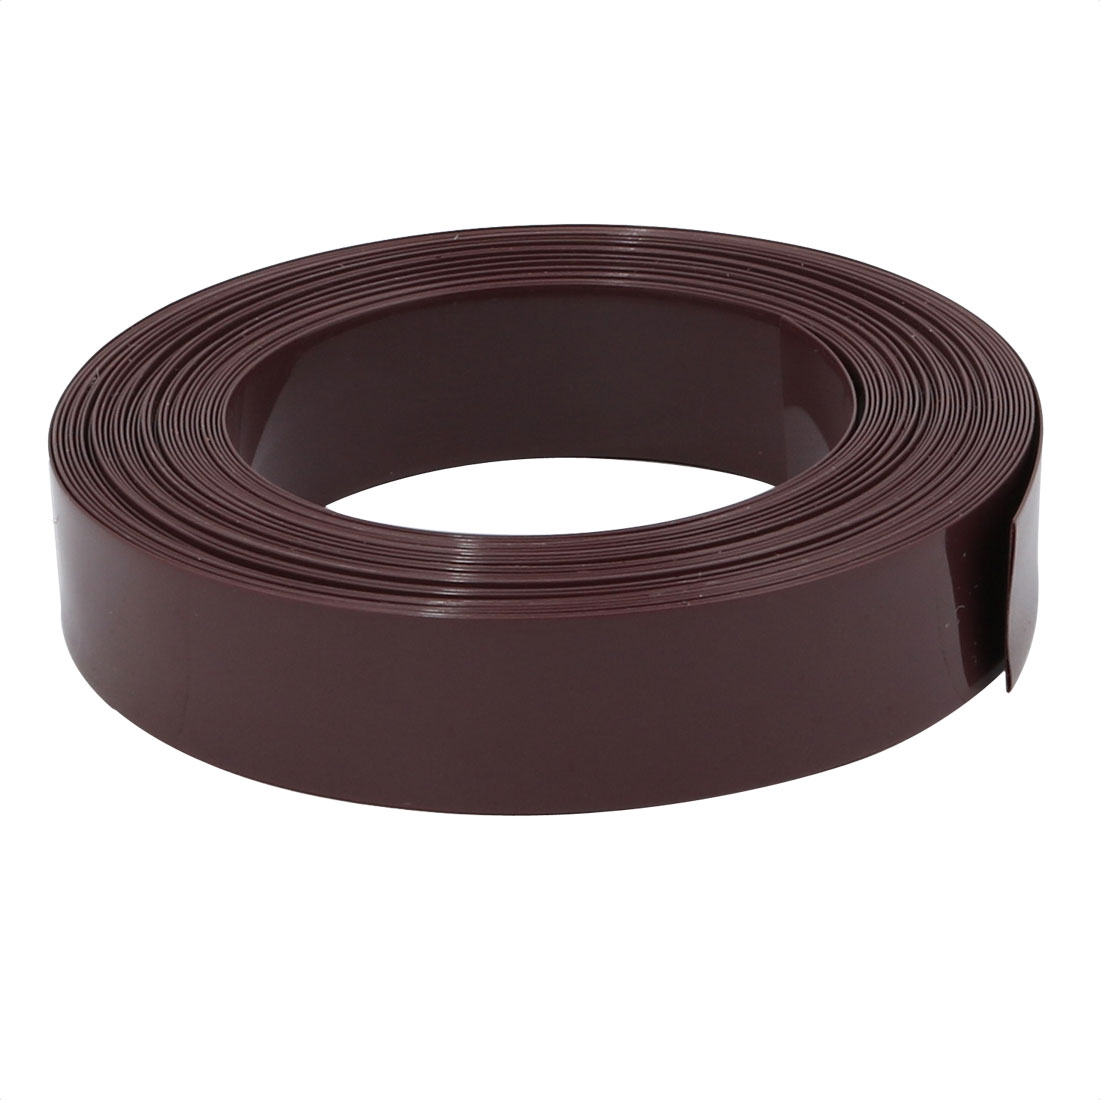 12mm Flat Width 5 Meters Long PVC Heat Shrinkable Tube Brown for Battery Pack